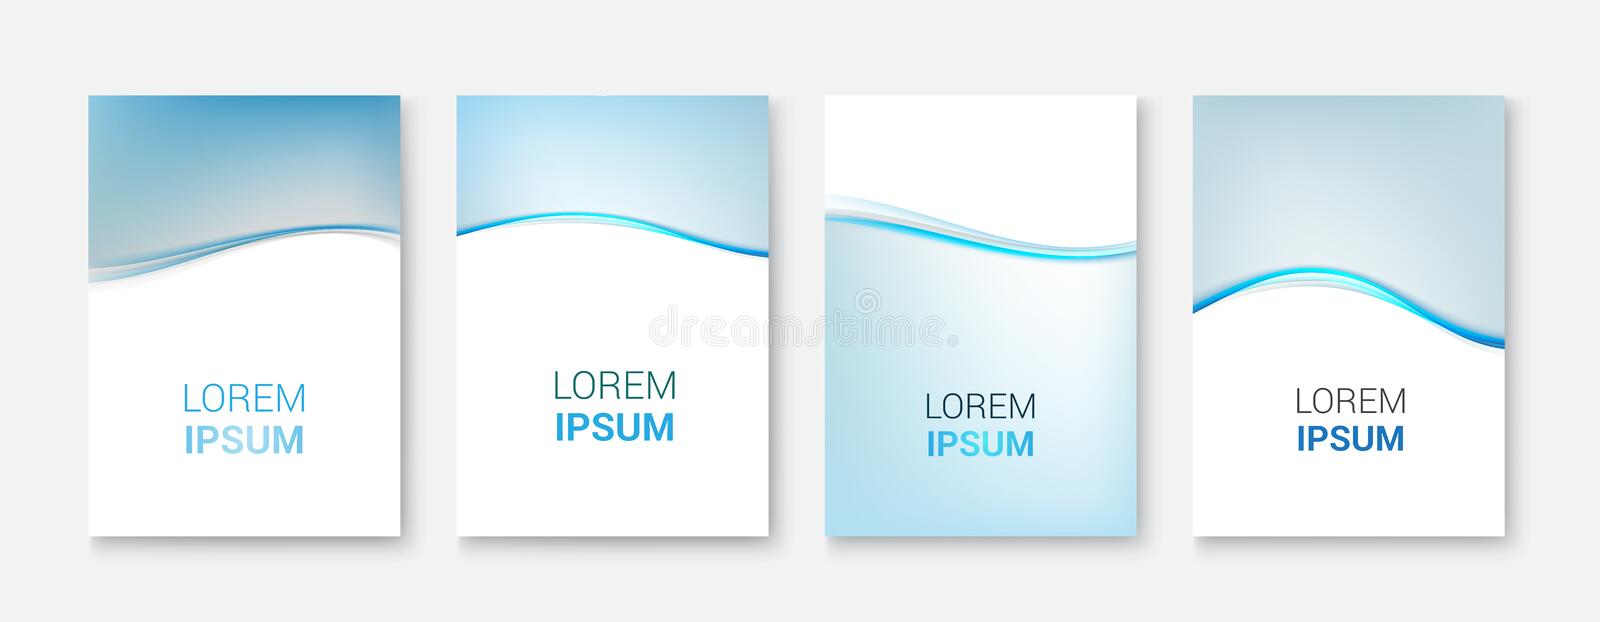 Vector Abstract smooth color blue wave background.Vector illustration eps 10 royalty free illustration